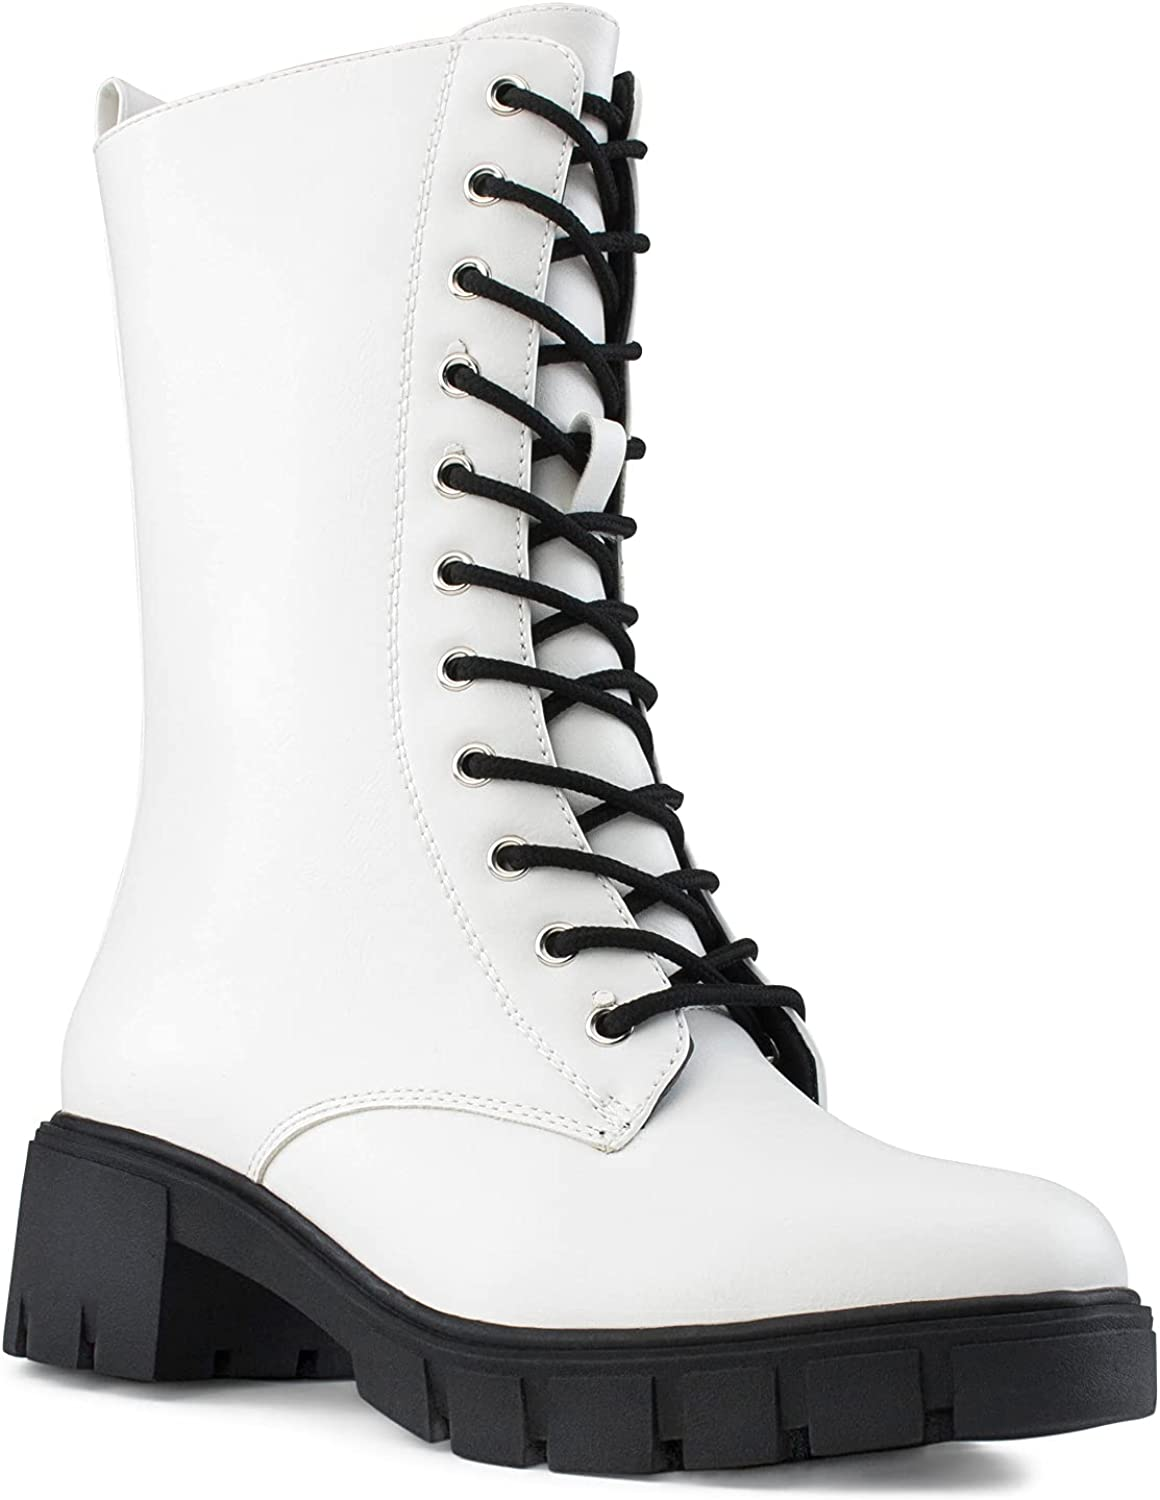 RF ROOM OF FASHION Women's Lug Sole Combat Ankle Mid Calf Boots